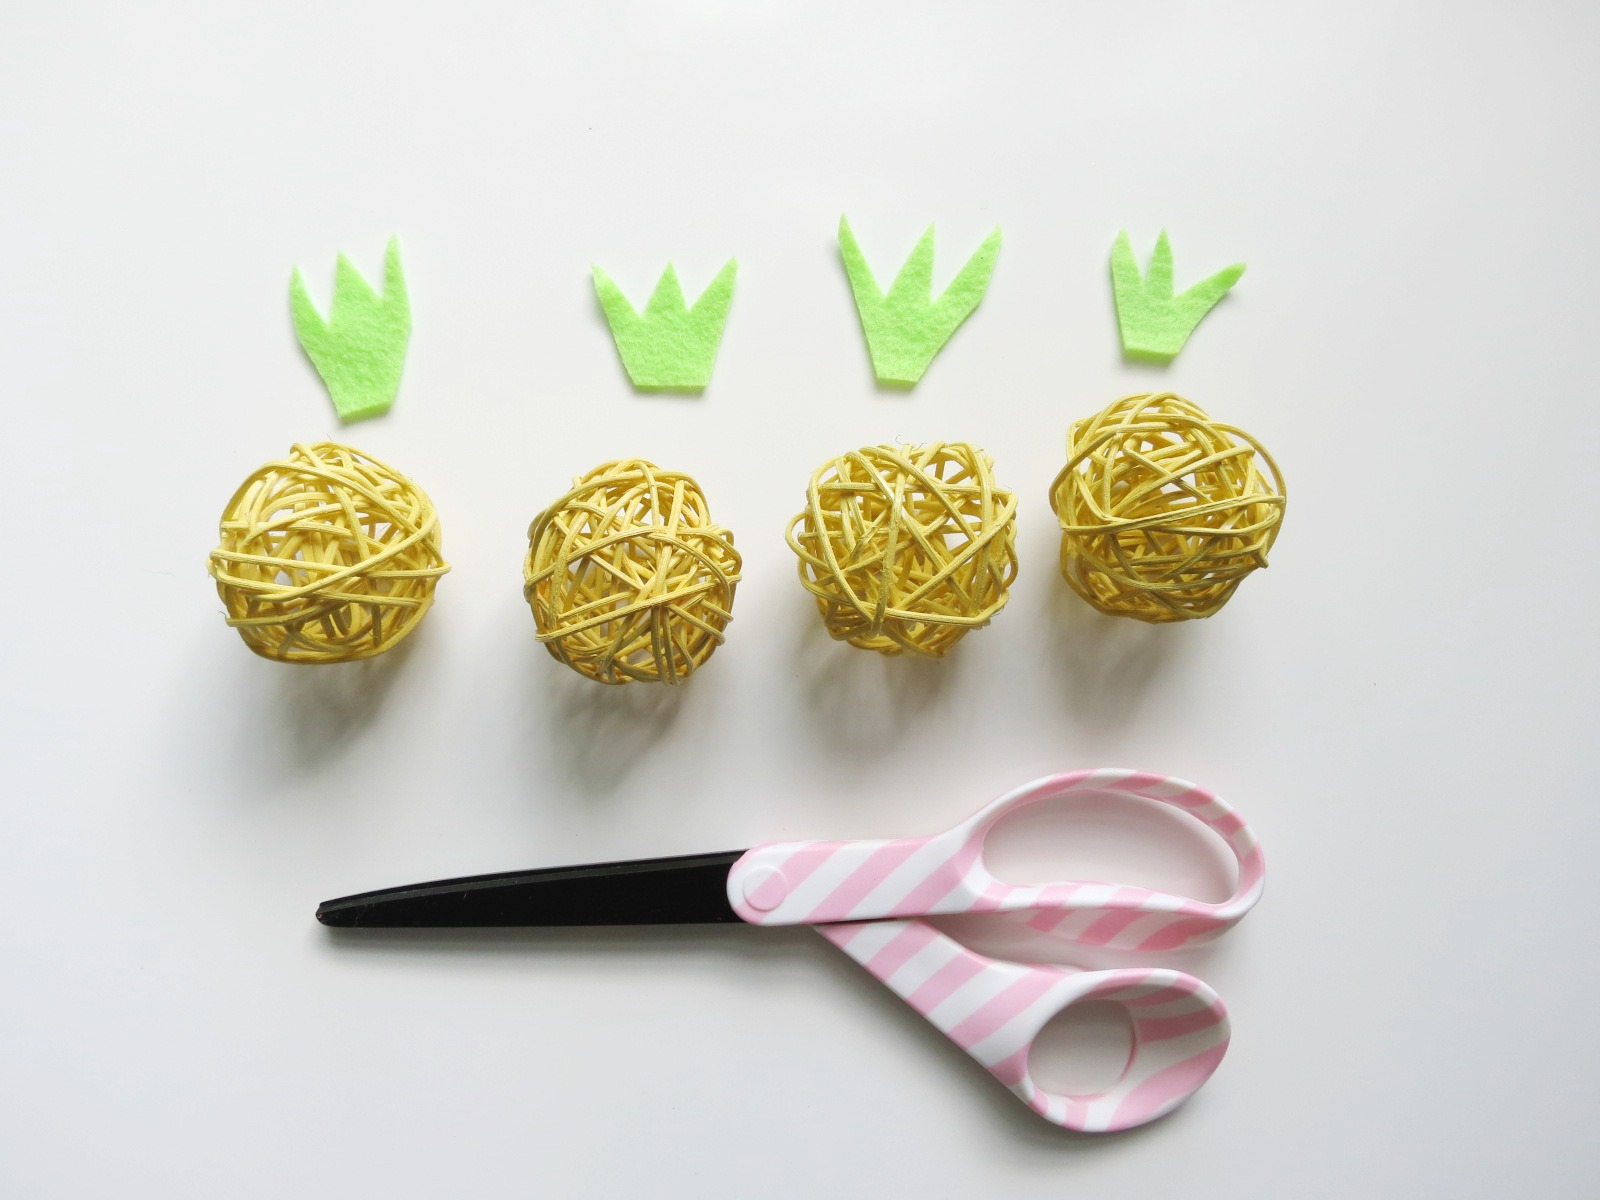 Try this super cute and super easy tutorial for a pineapple garland made from those kooky straw balls you see everywhere. The best part? This is a super easy and super affordable project that anyone can do! Click for the full how-to.